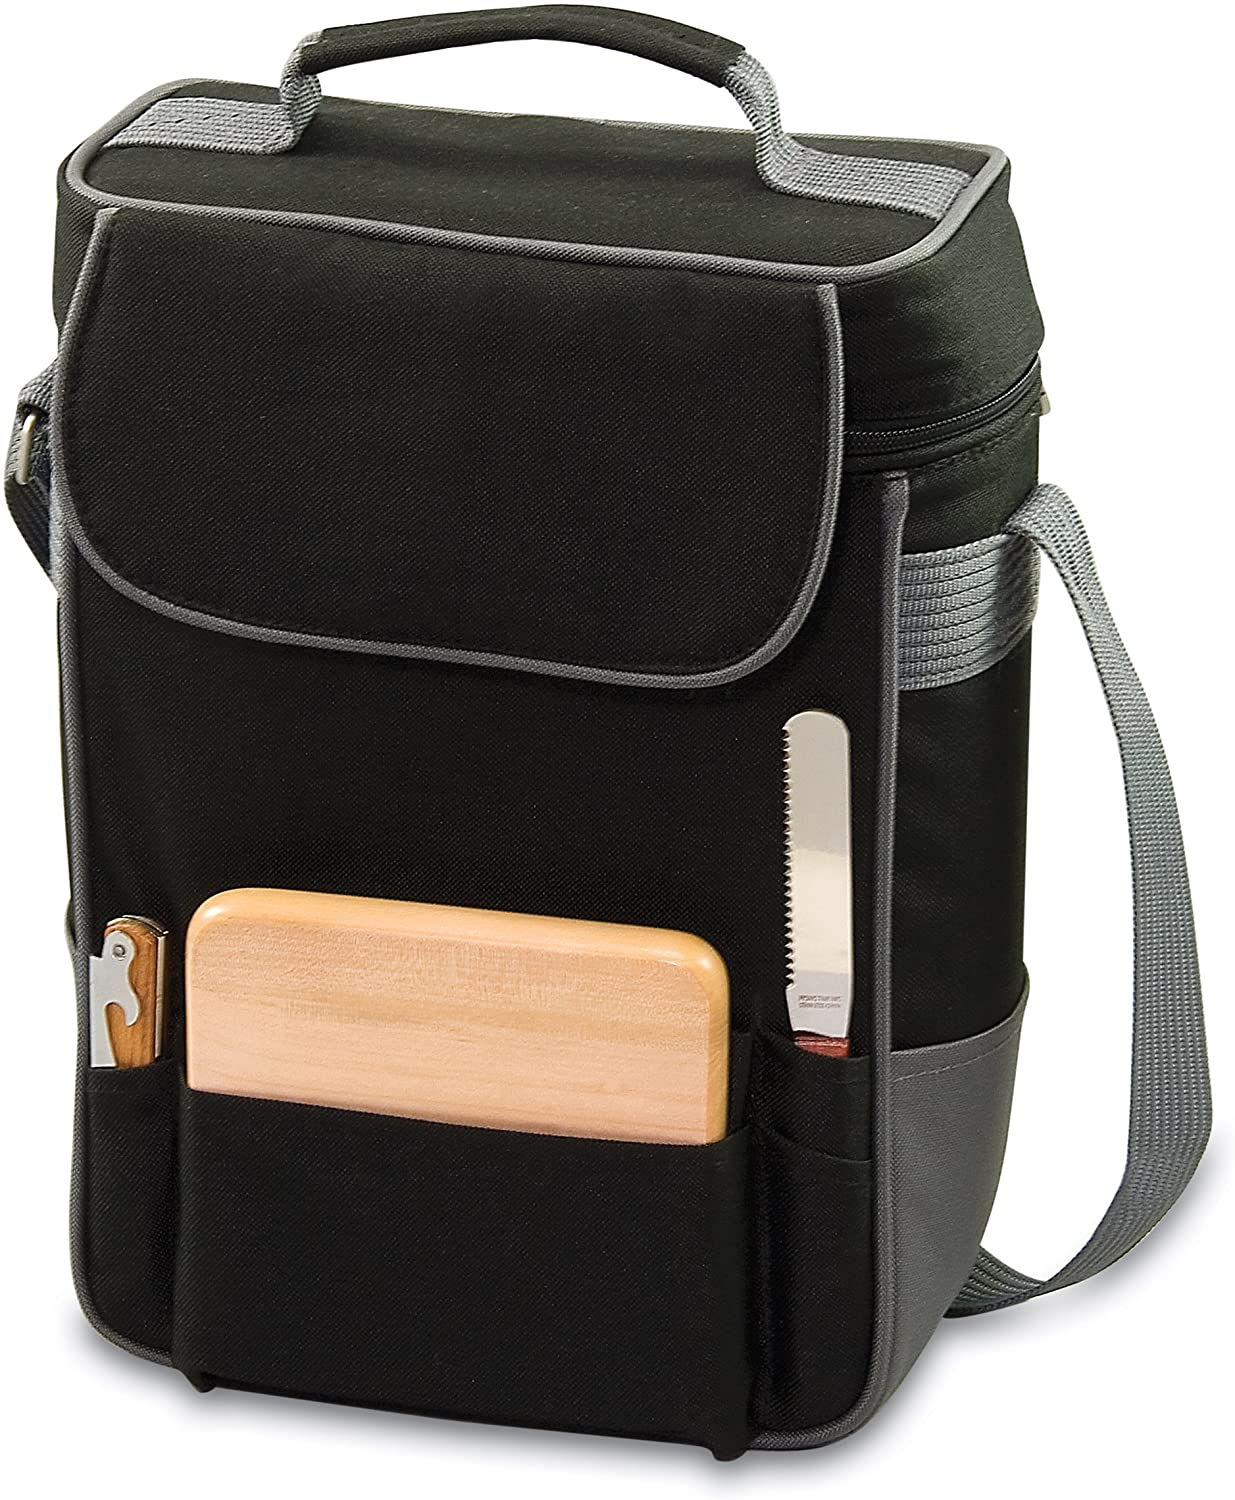 LEGACY - a Picnic Time Brand Duet Insulated Wine and Cheese Tote, Black and Silver